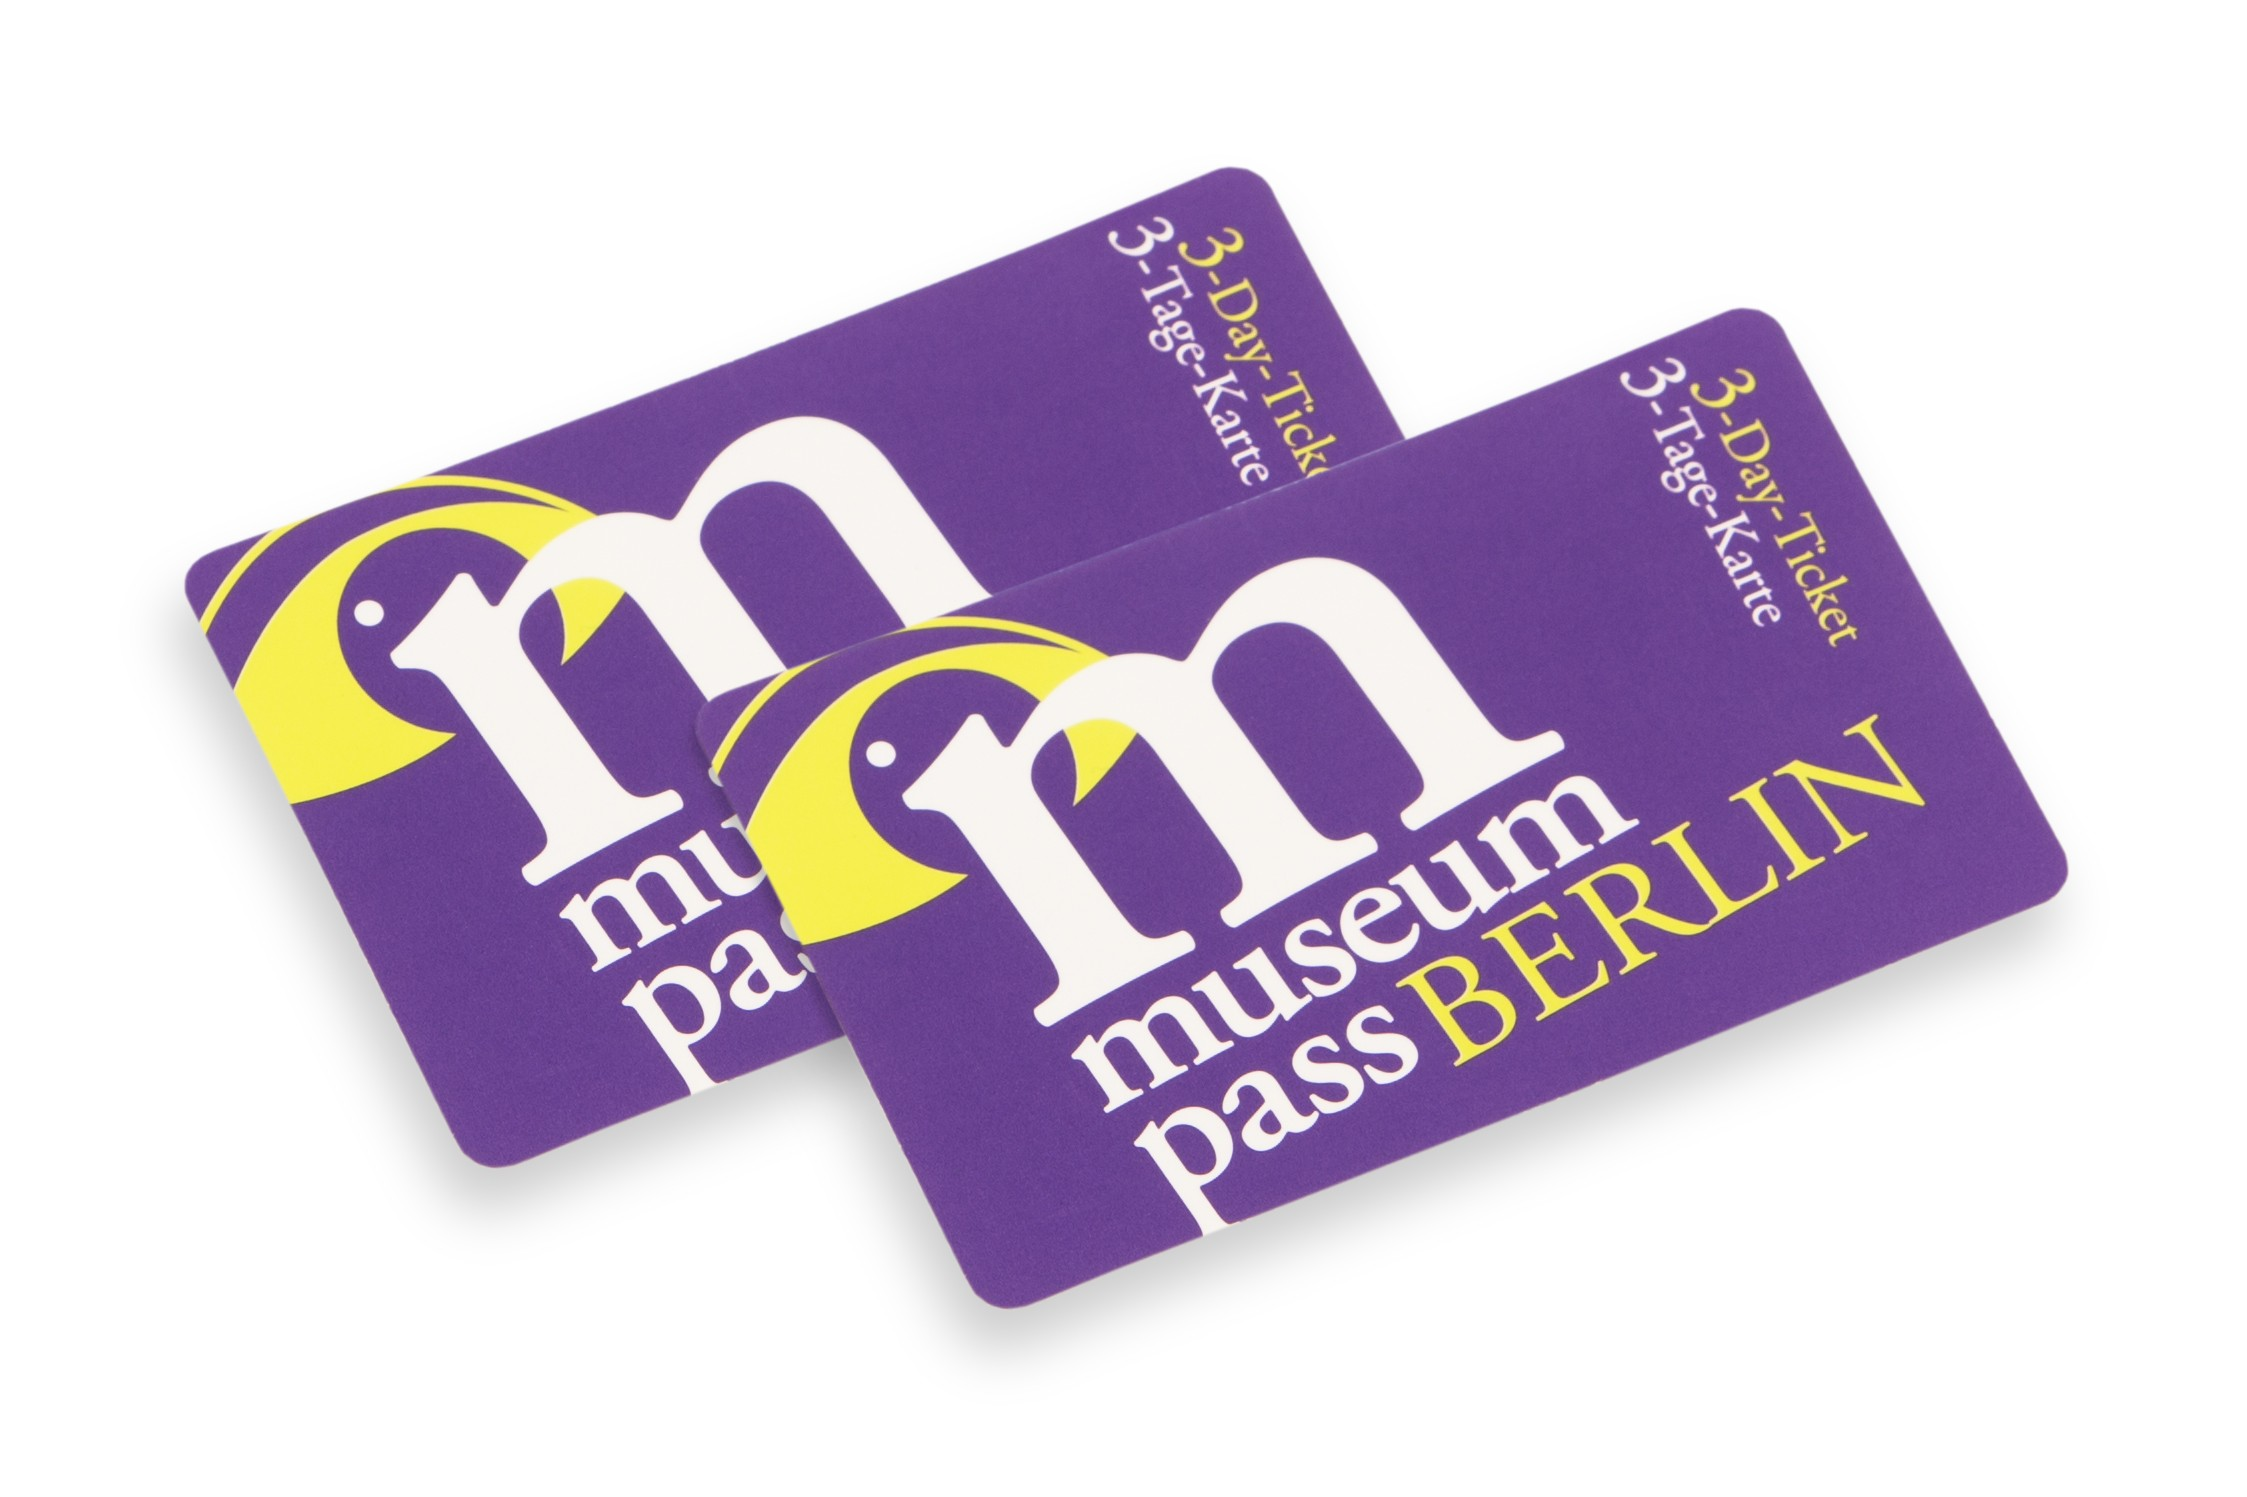 Museumpass Berlin 3 days ticket